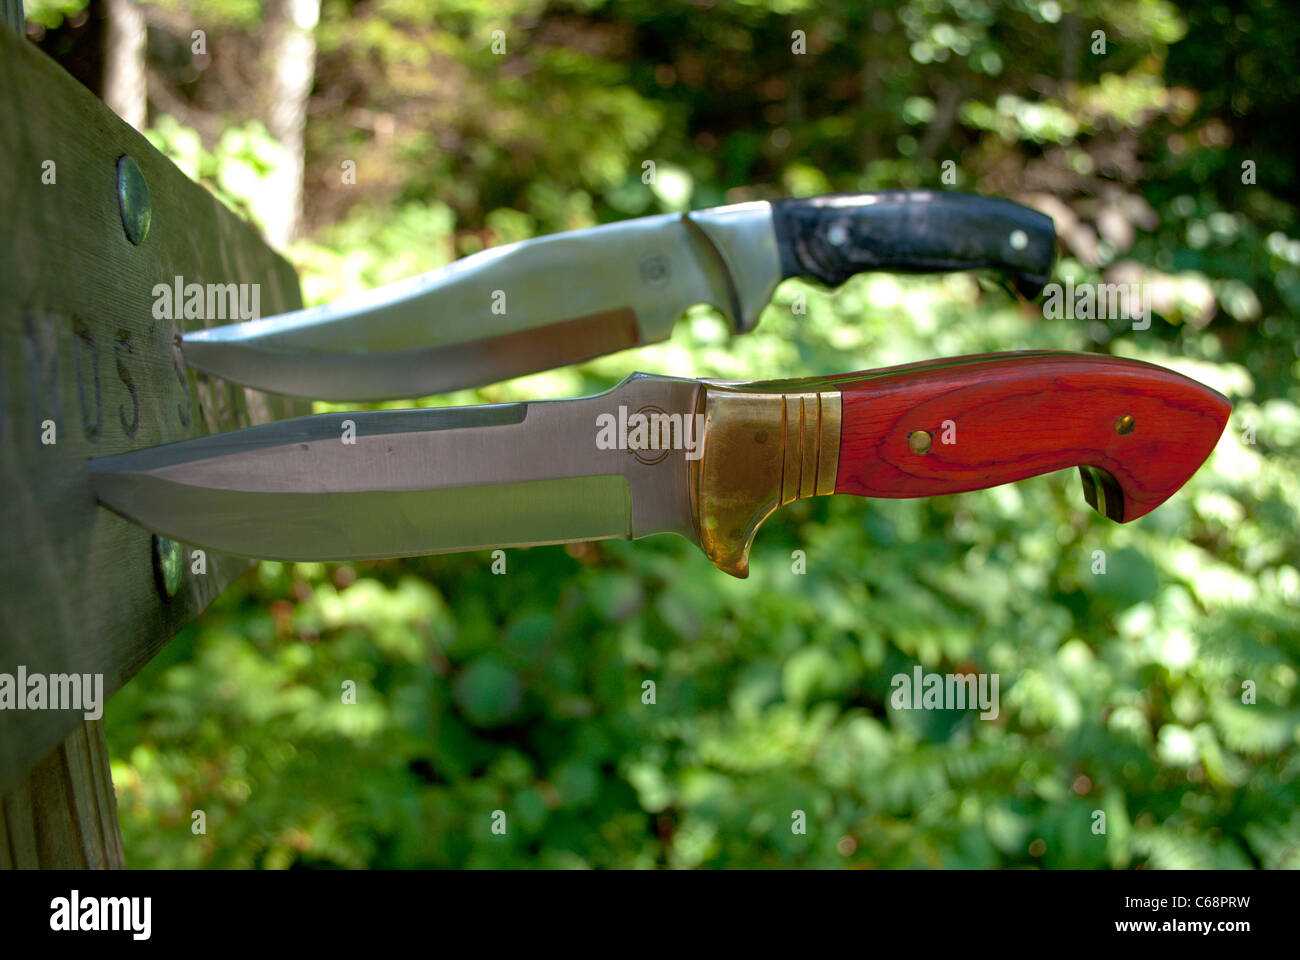 Two knives in the wood. - Stock Image